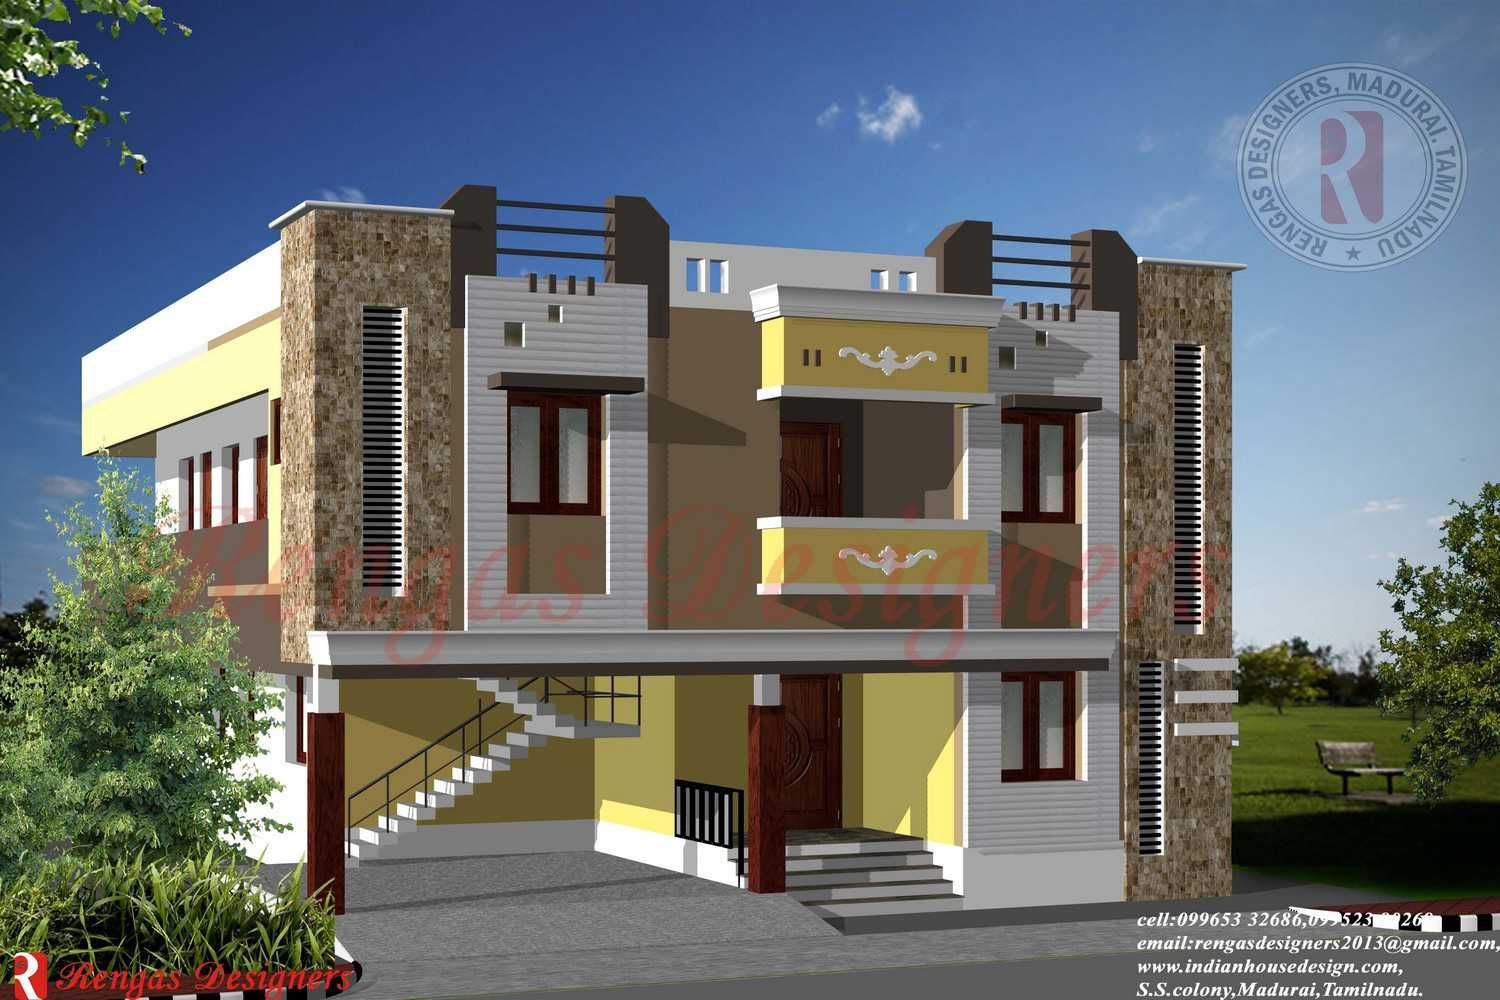 Parapet wall designs google search residence for Best house plans indian style